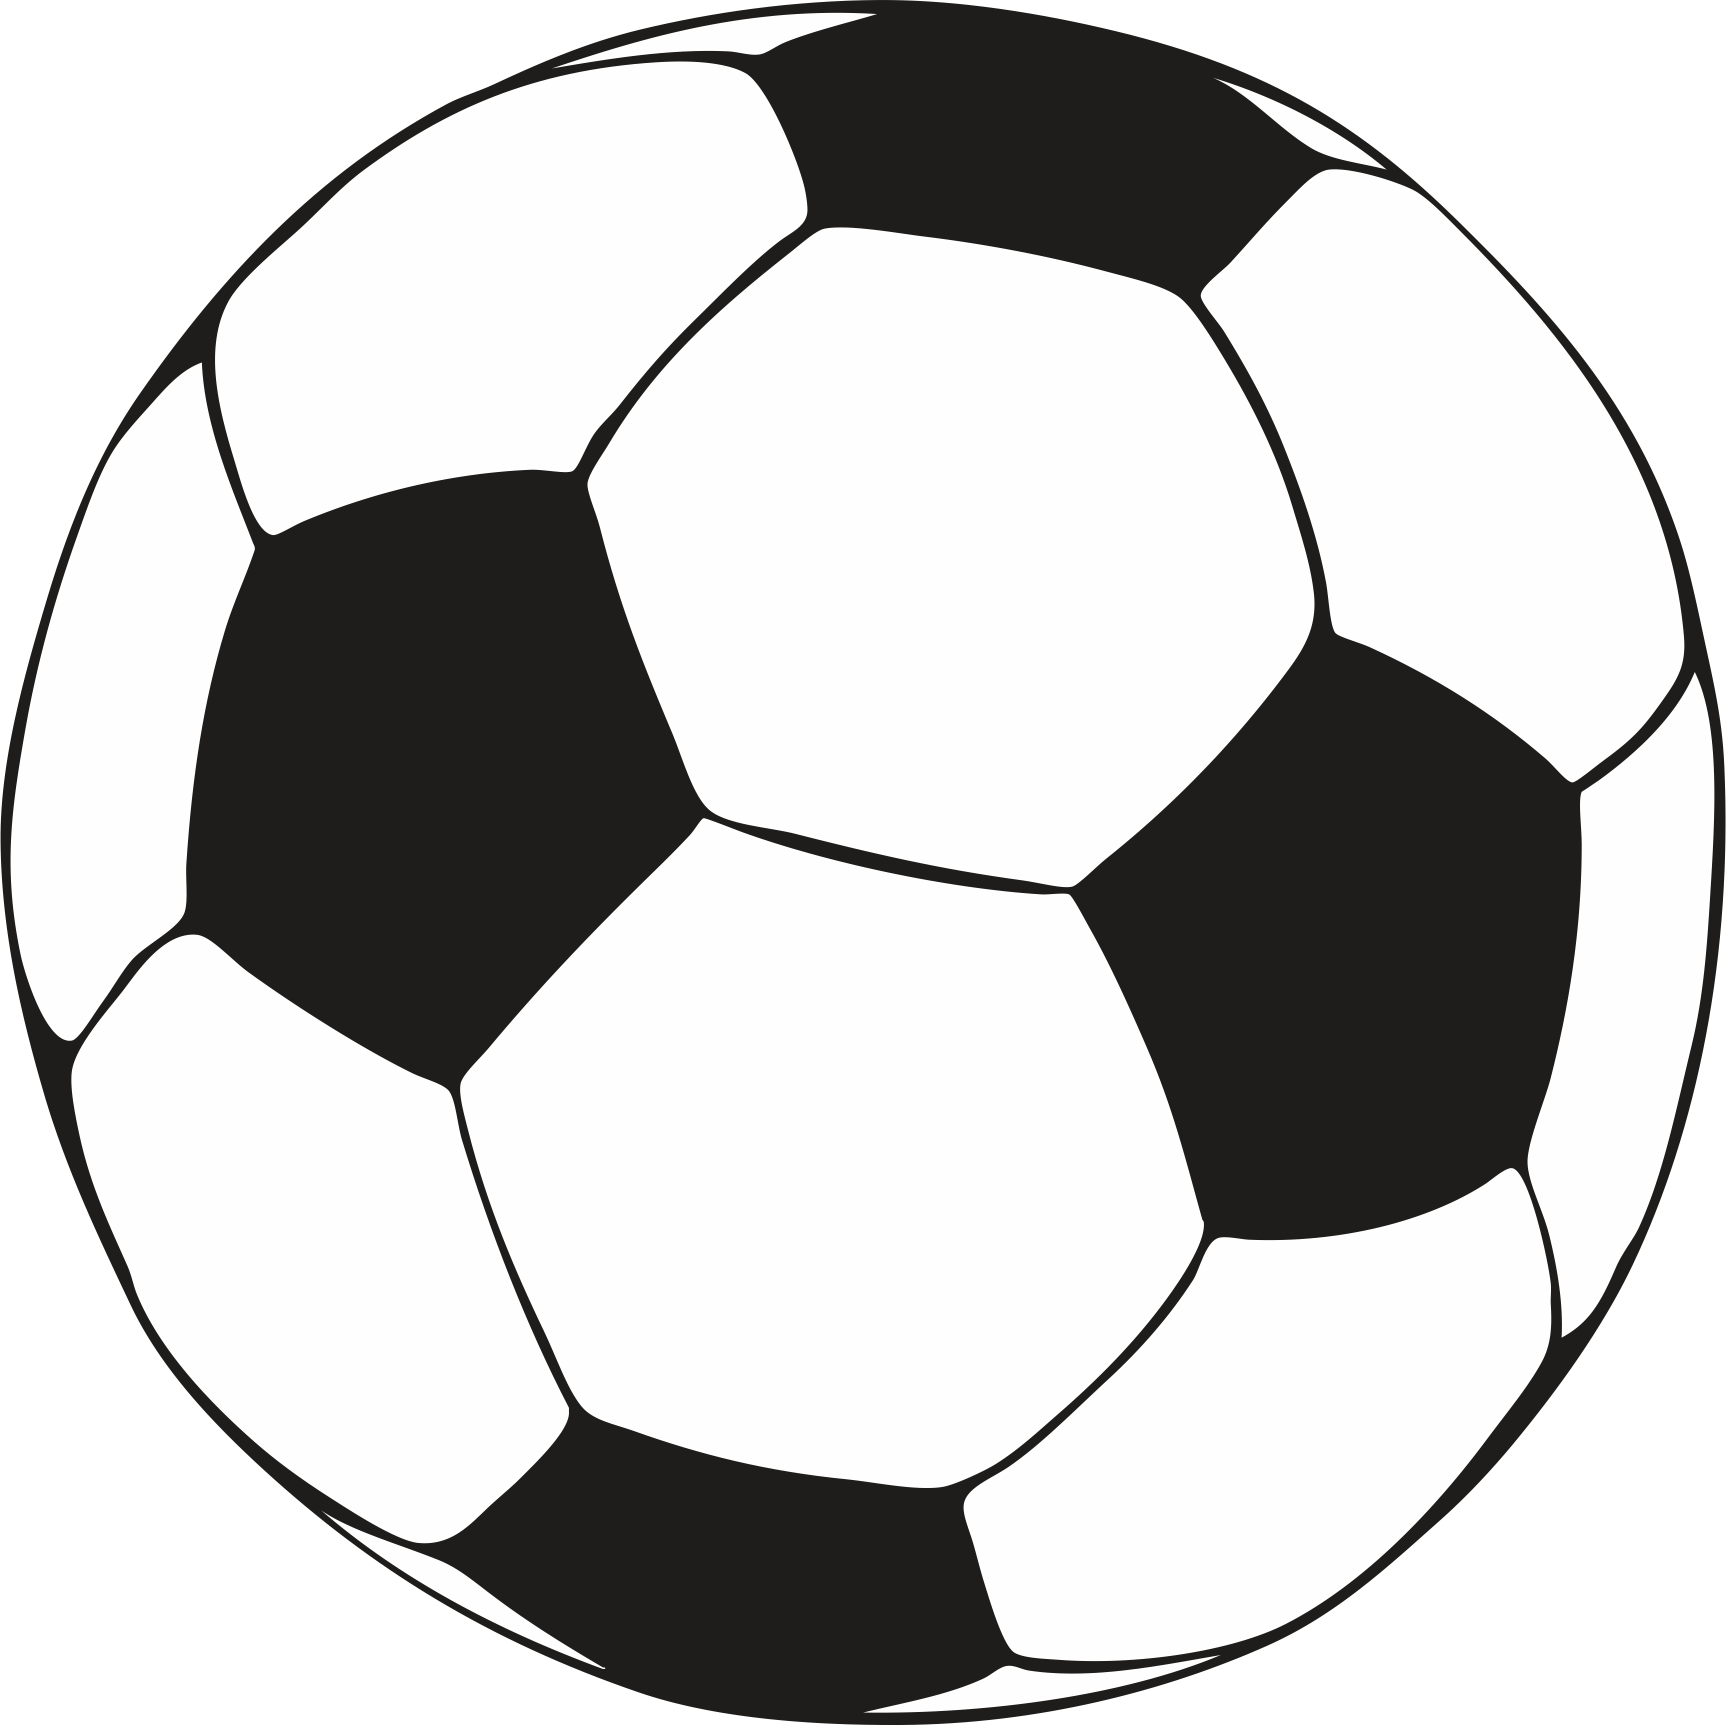 Watching soccer through a. Color clipart football player